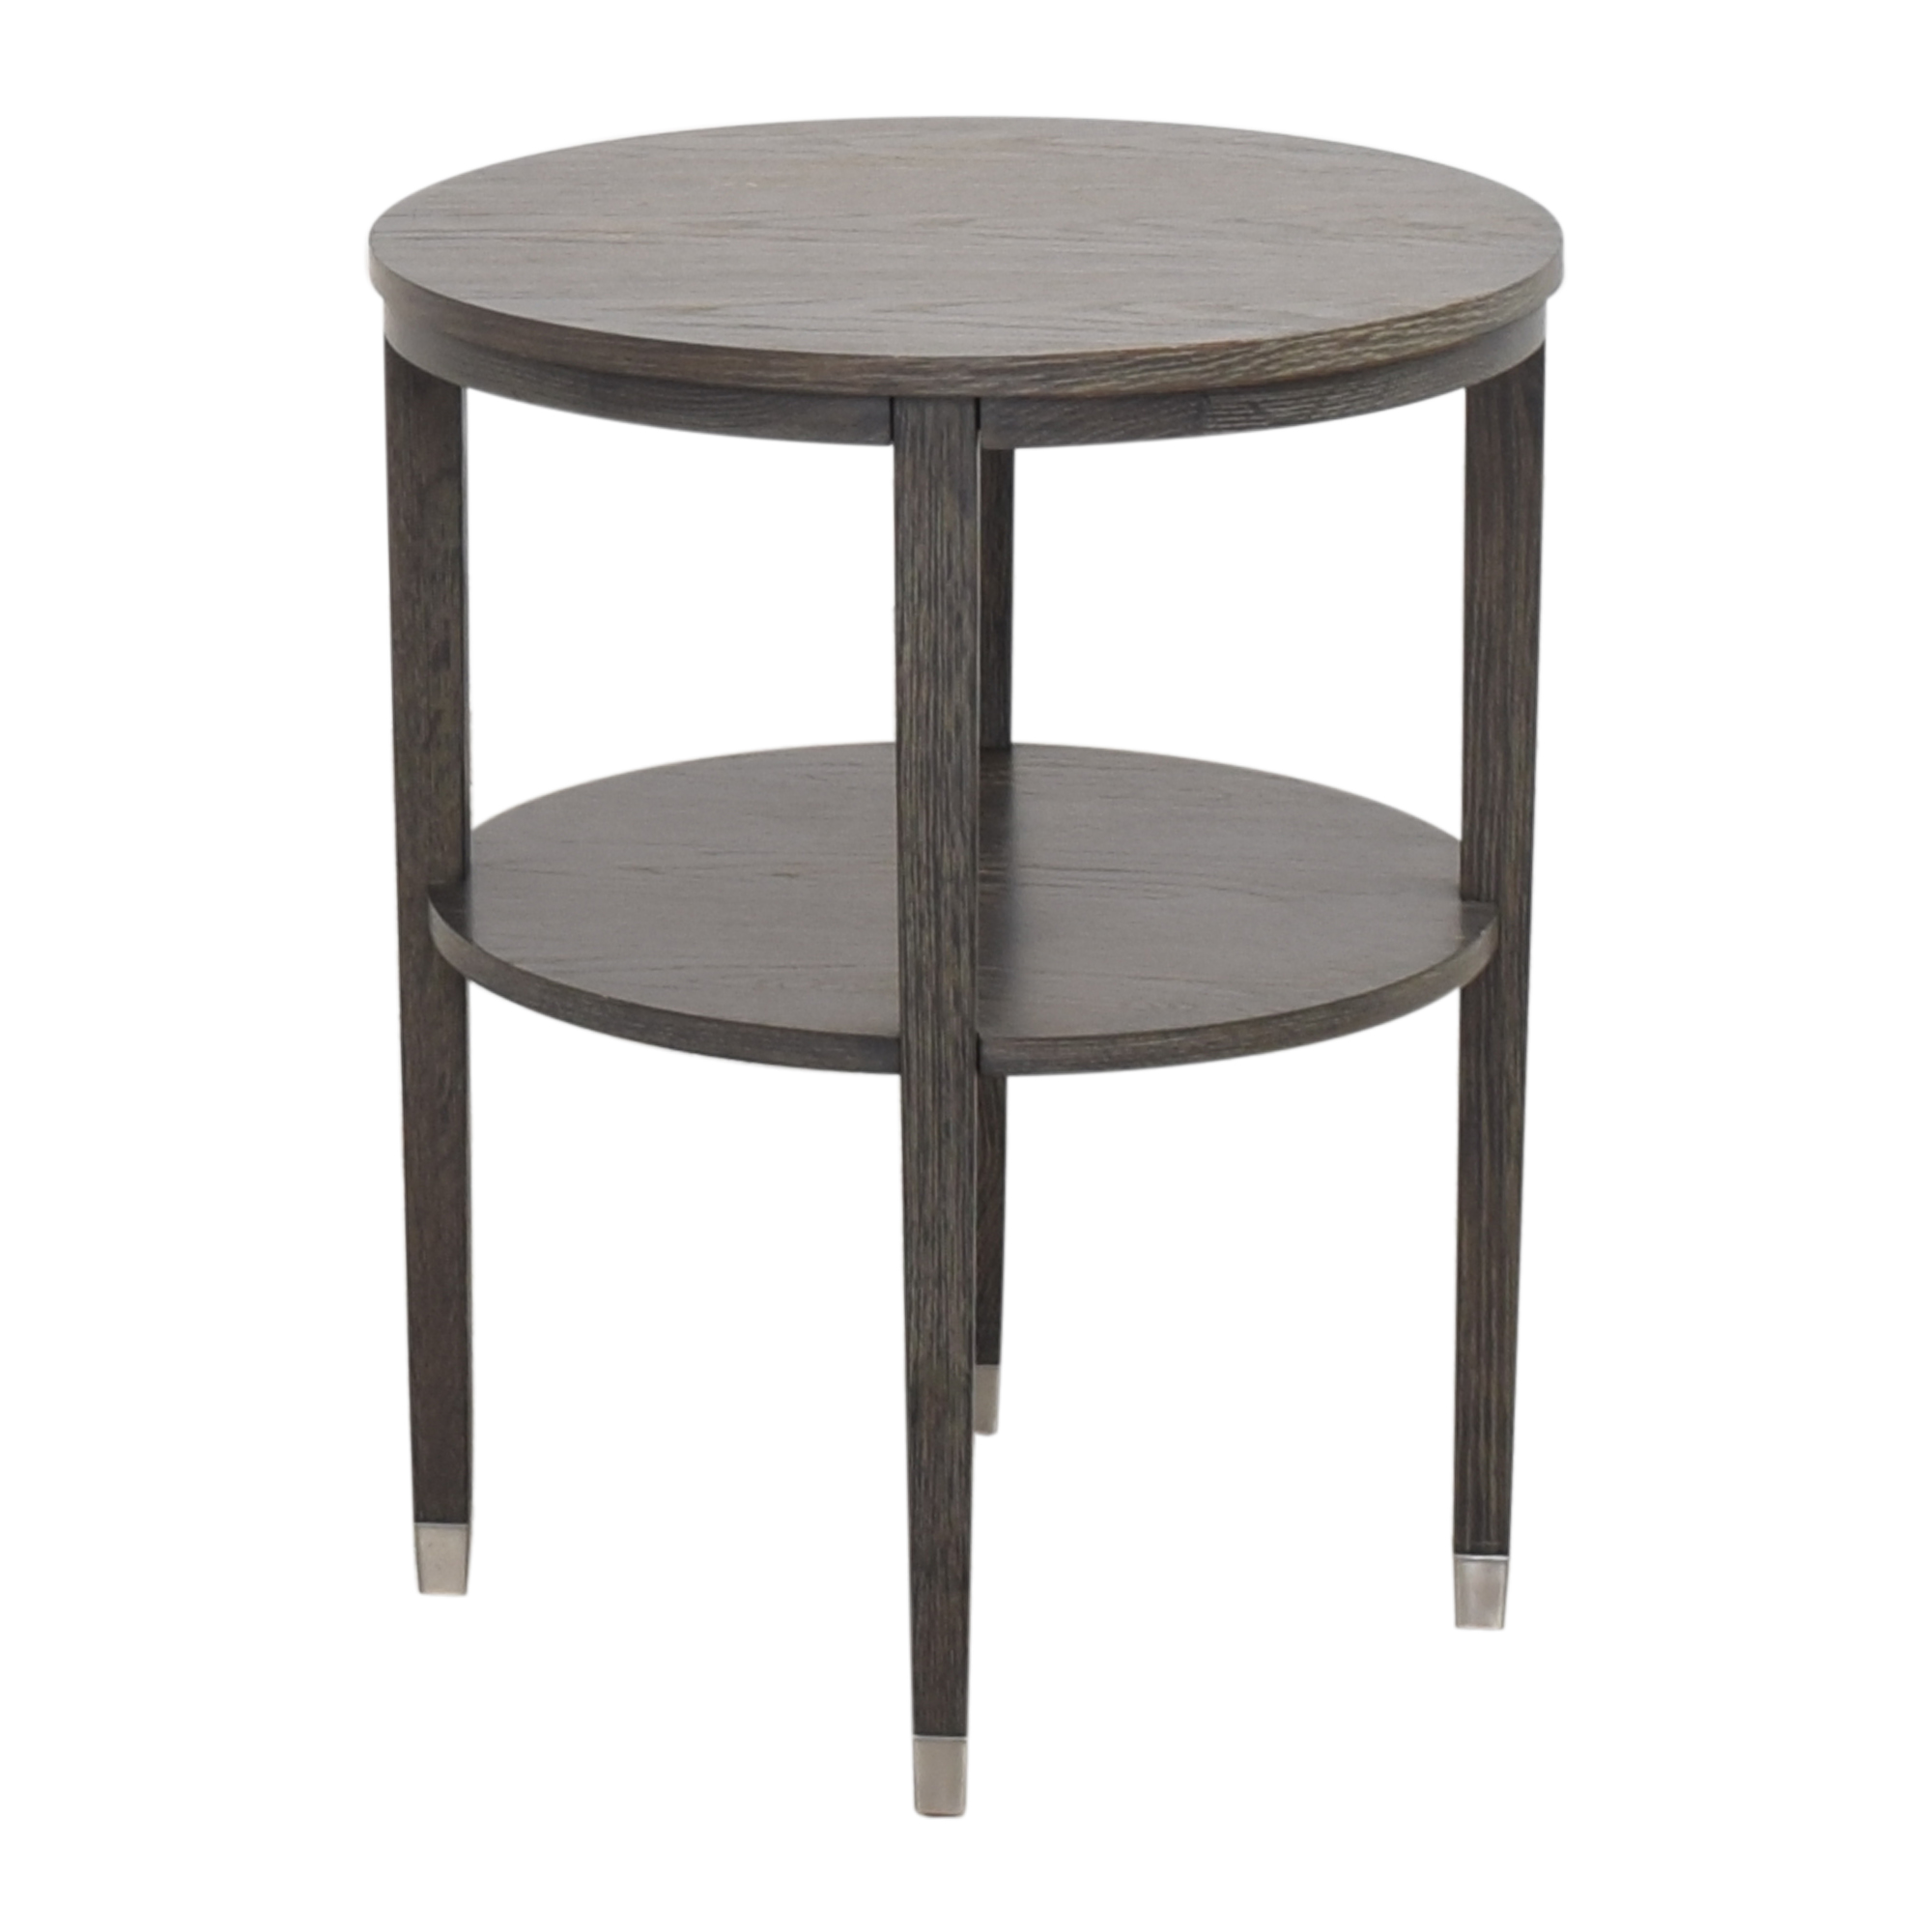 Arteriors Arteriors Home Gentry Side Table used